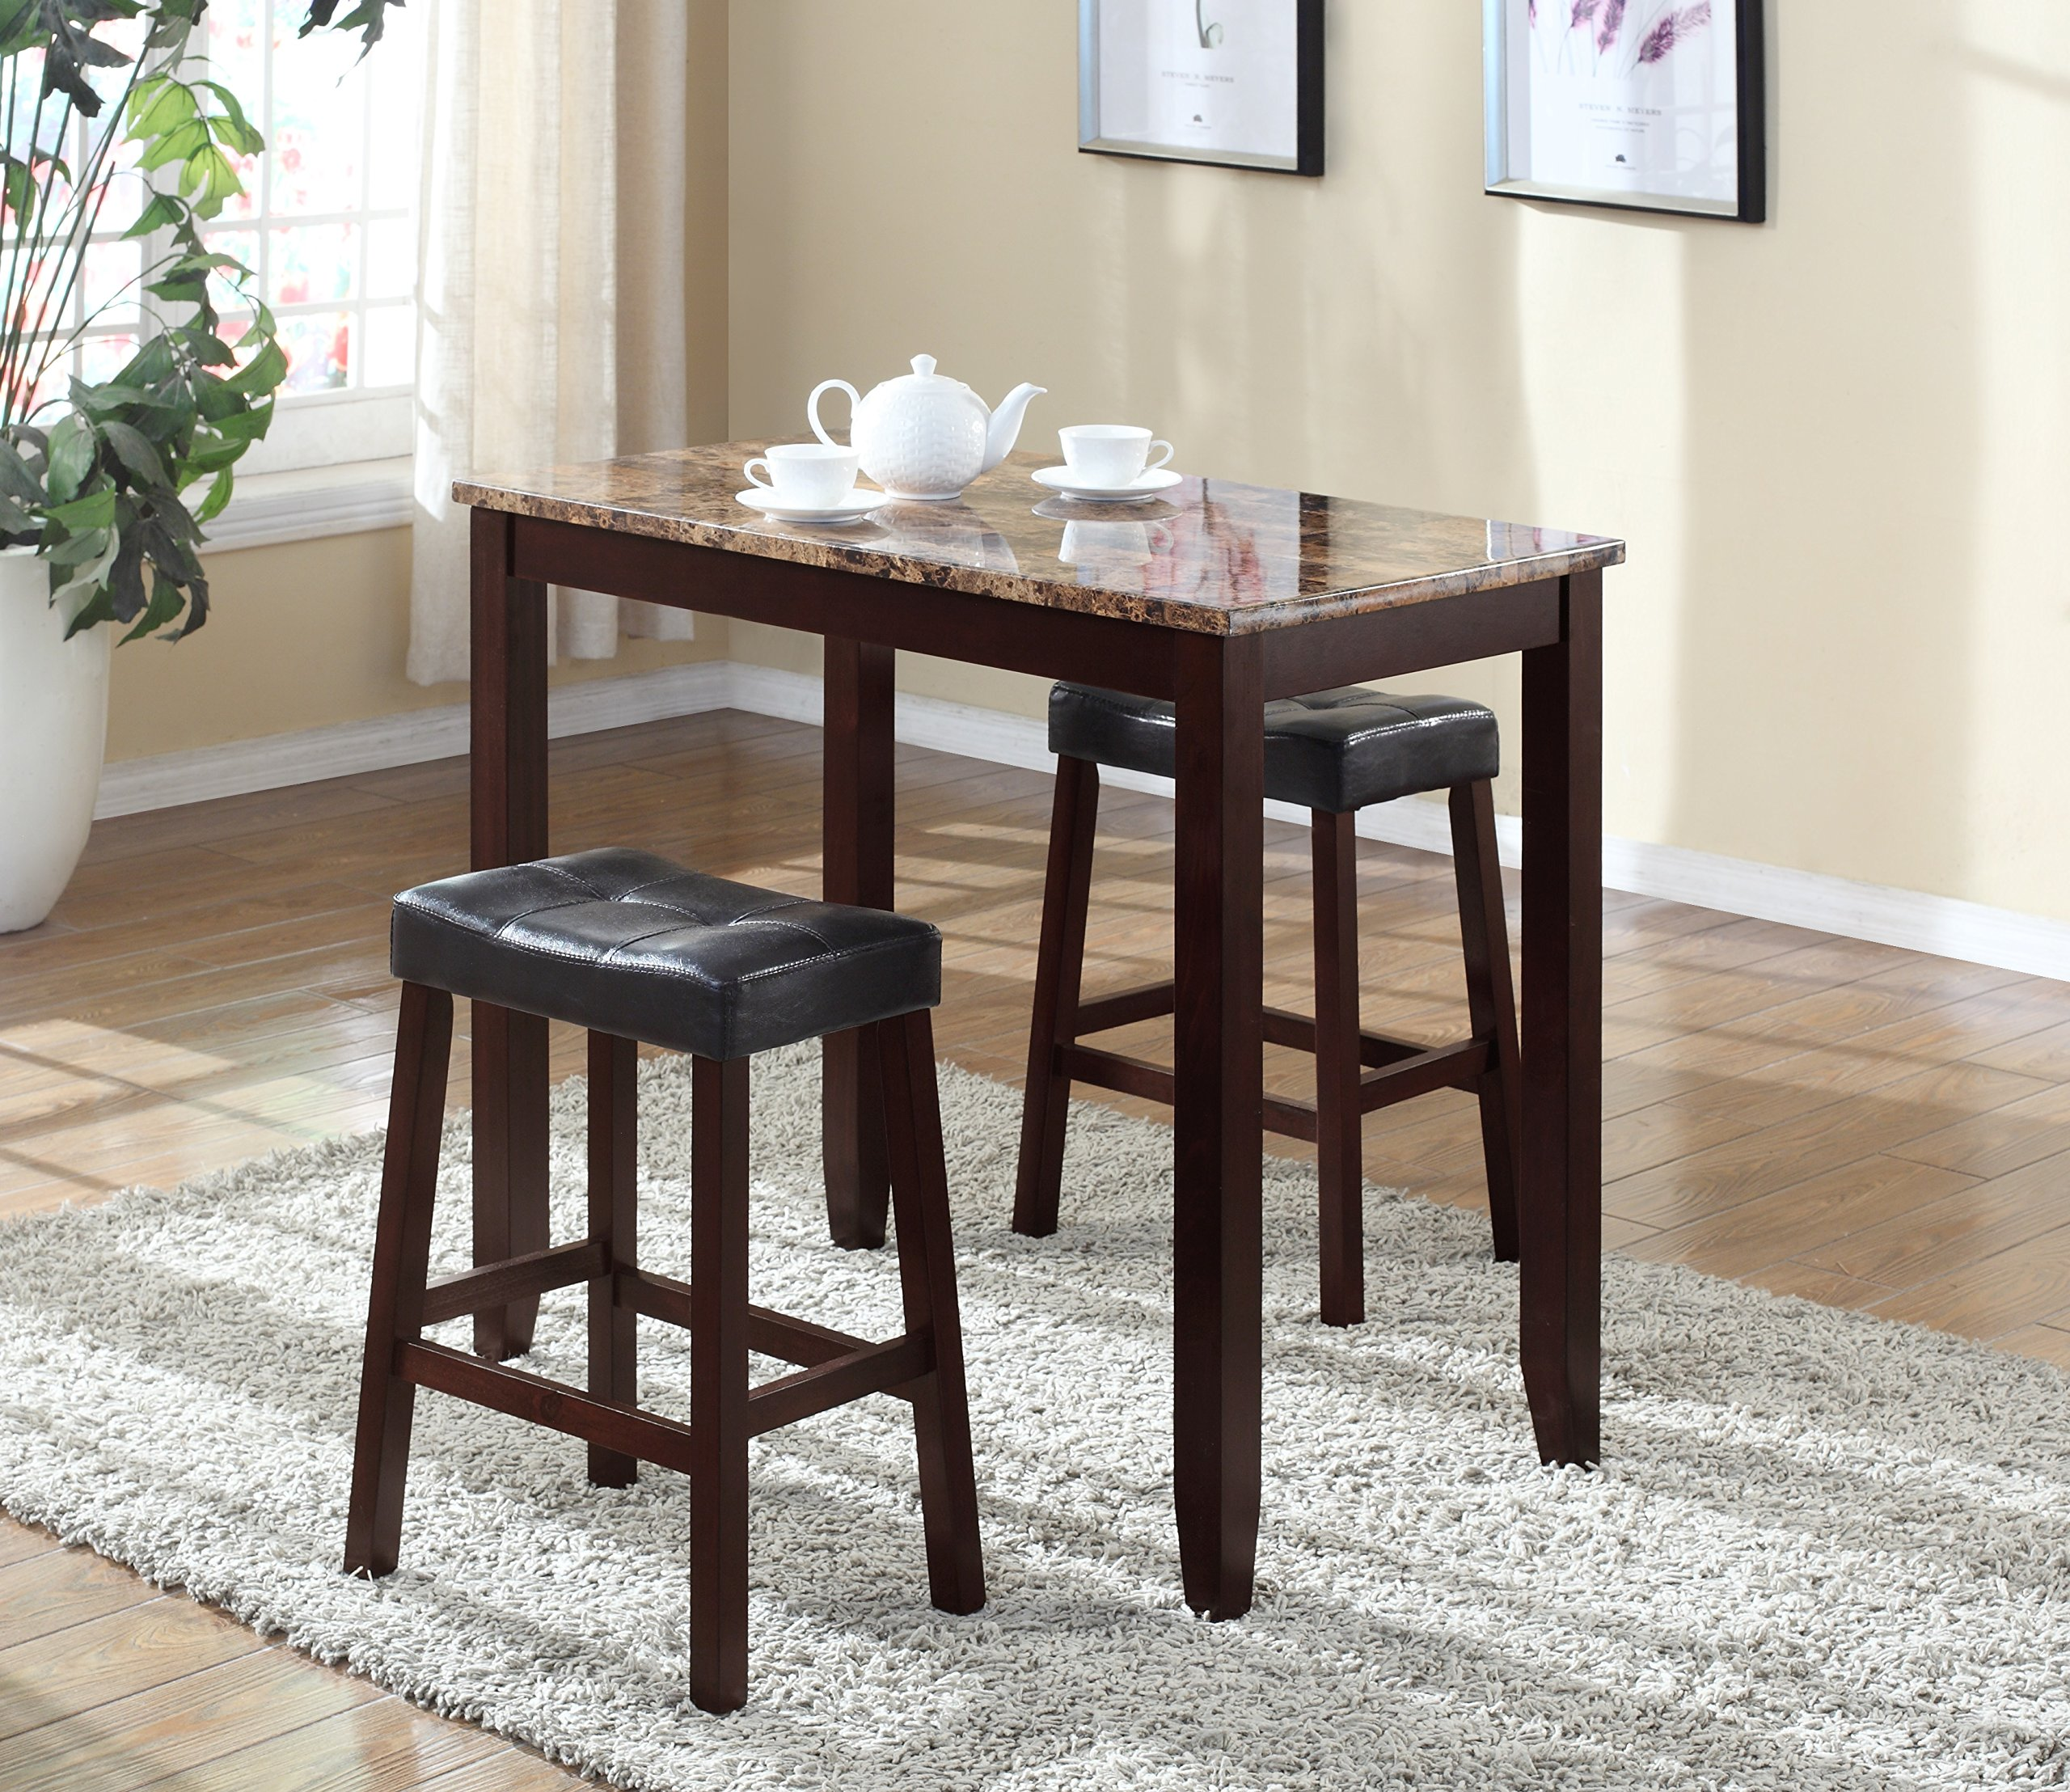 Roundhill Furniture 3-Piece Counter Height Glossy Print Marble Breakfast Table with Stools by Roundhill Furniture